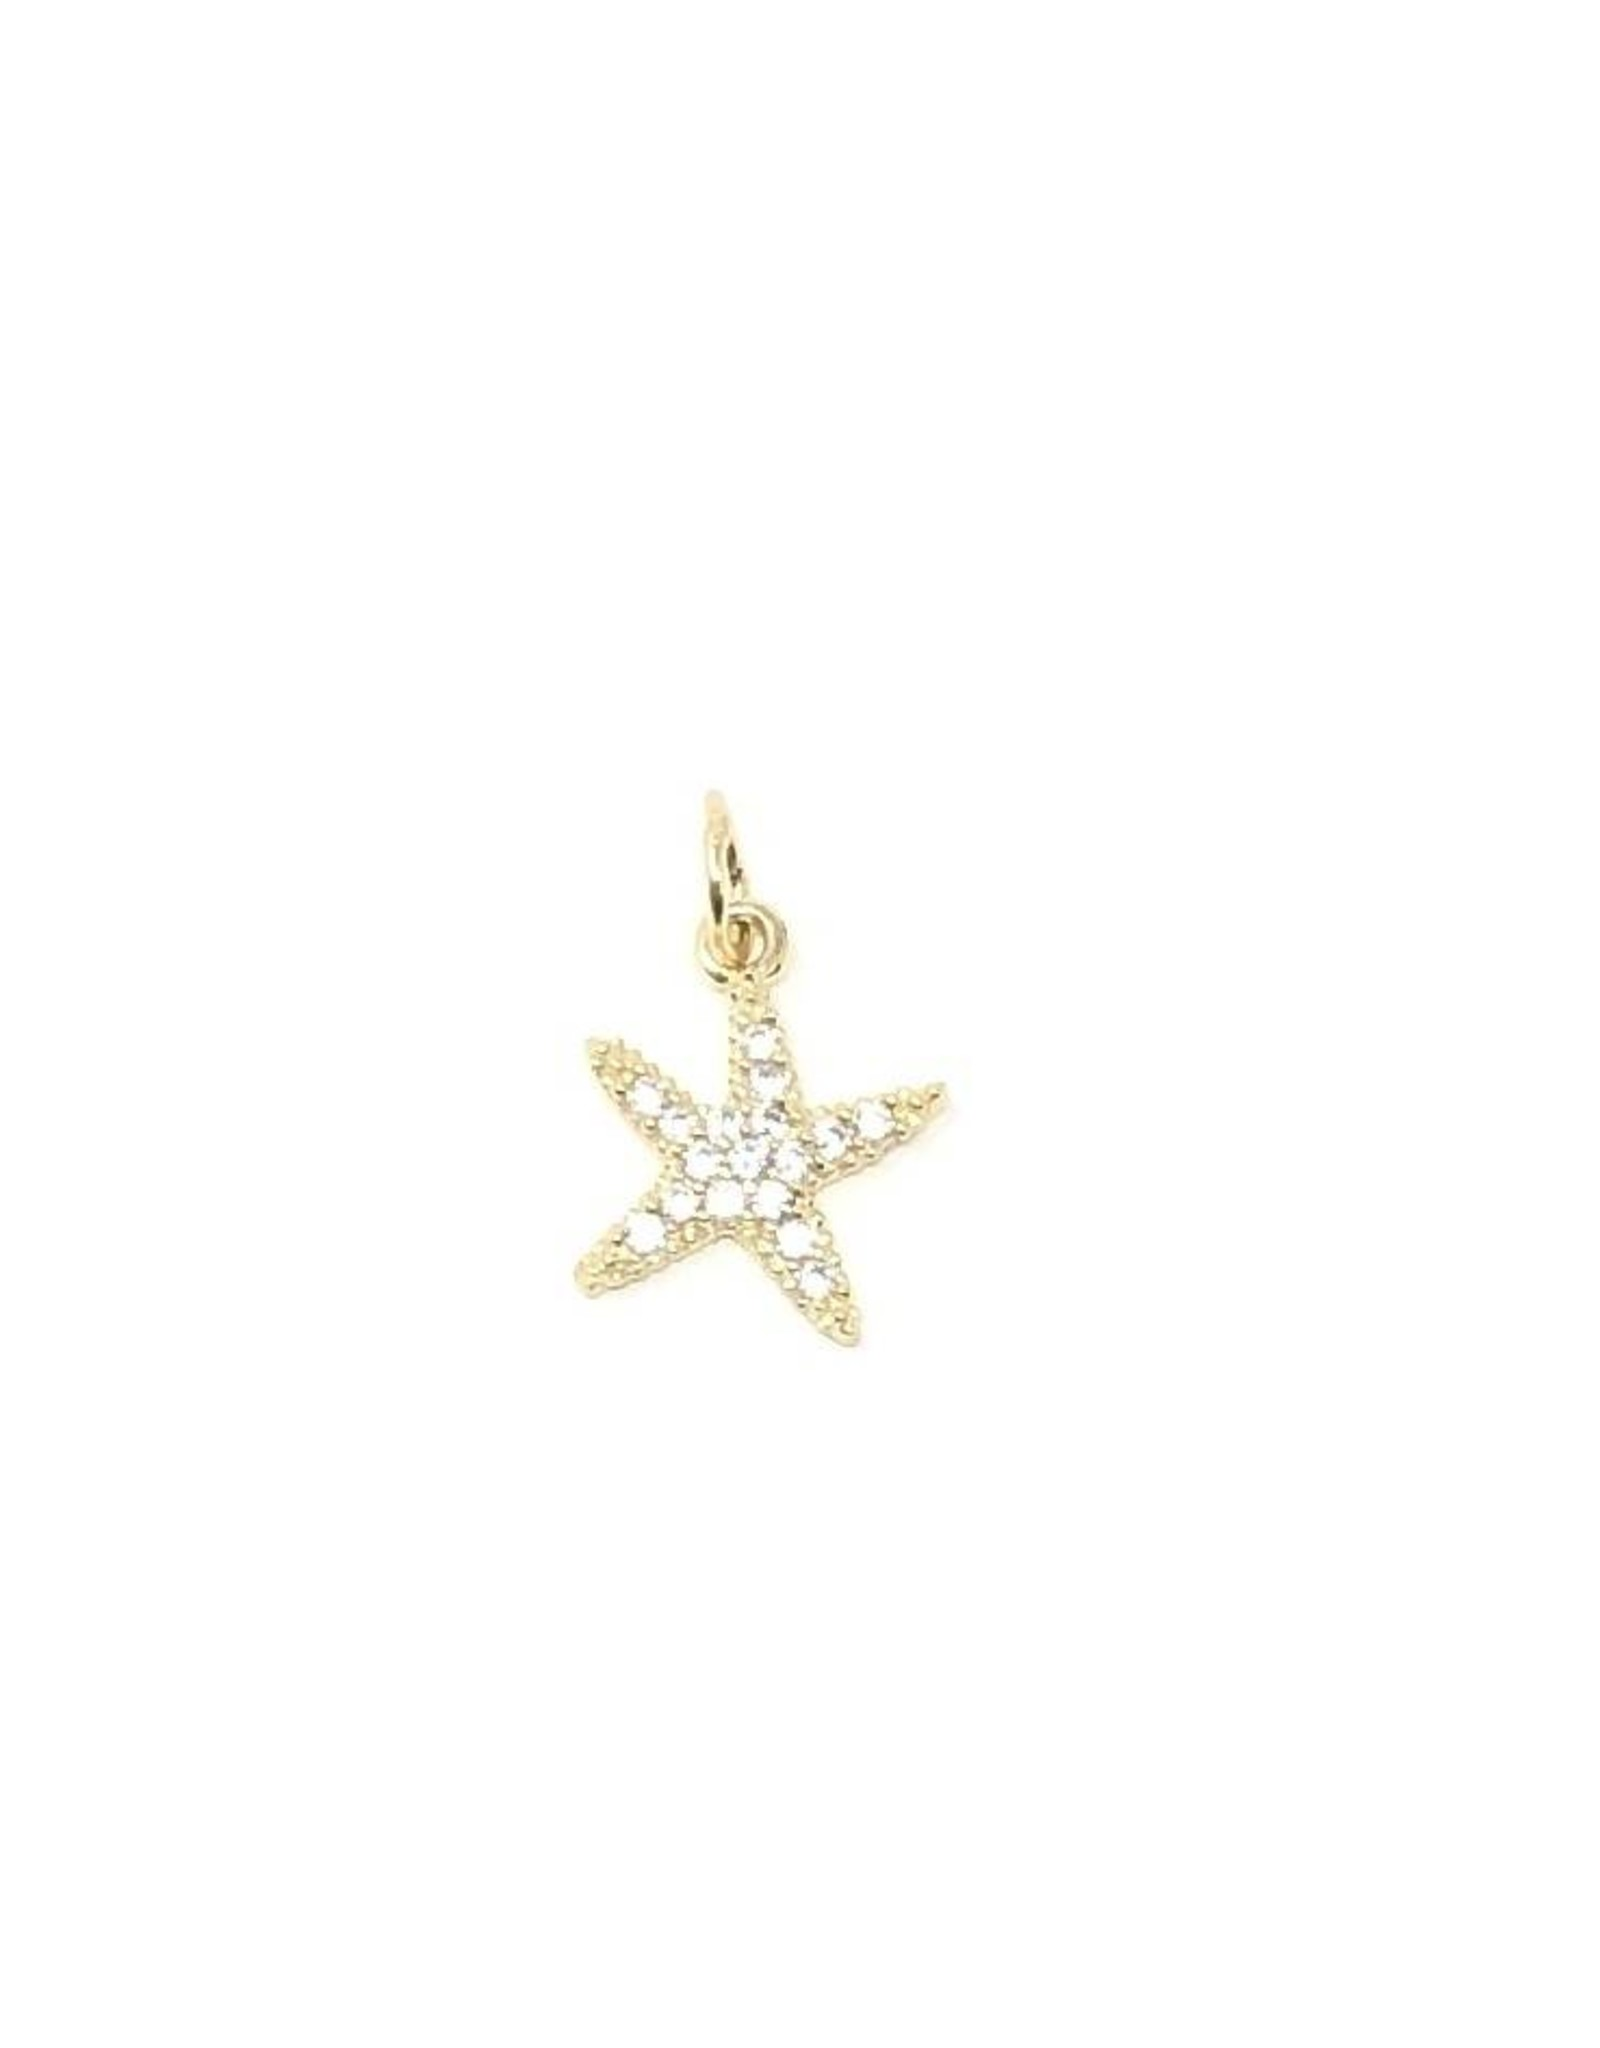 Starfish - CZ Gold Filled